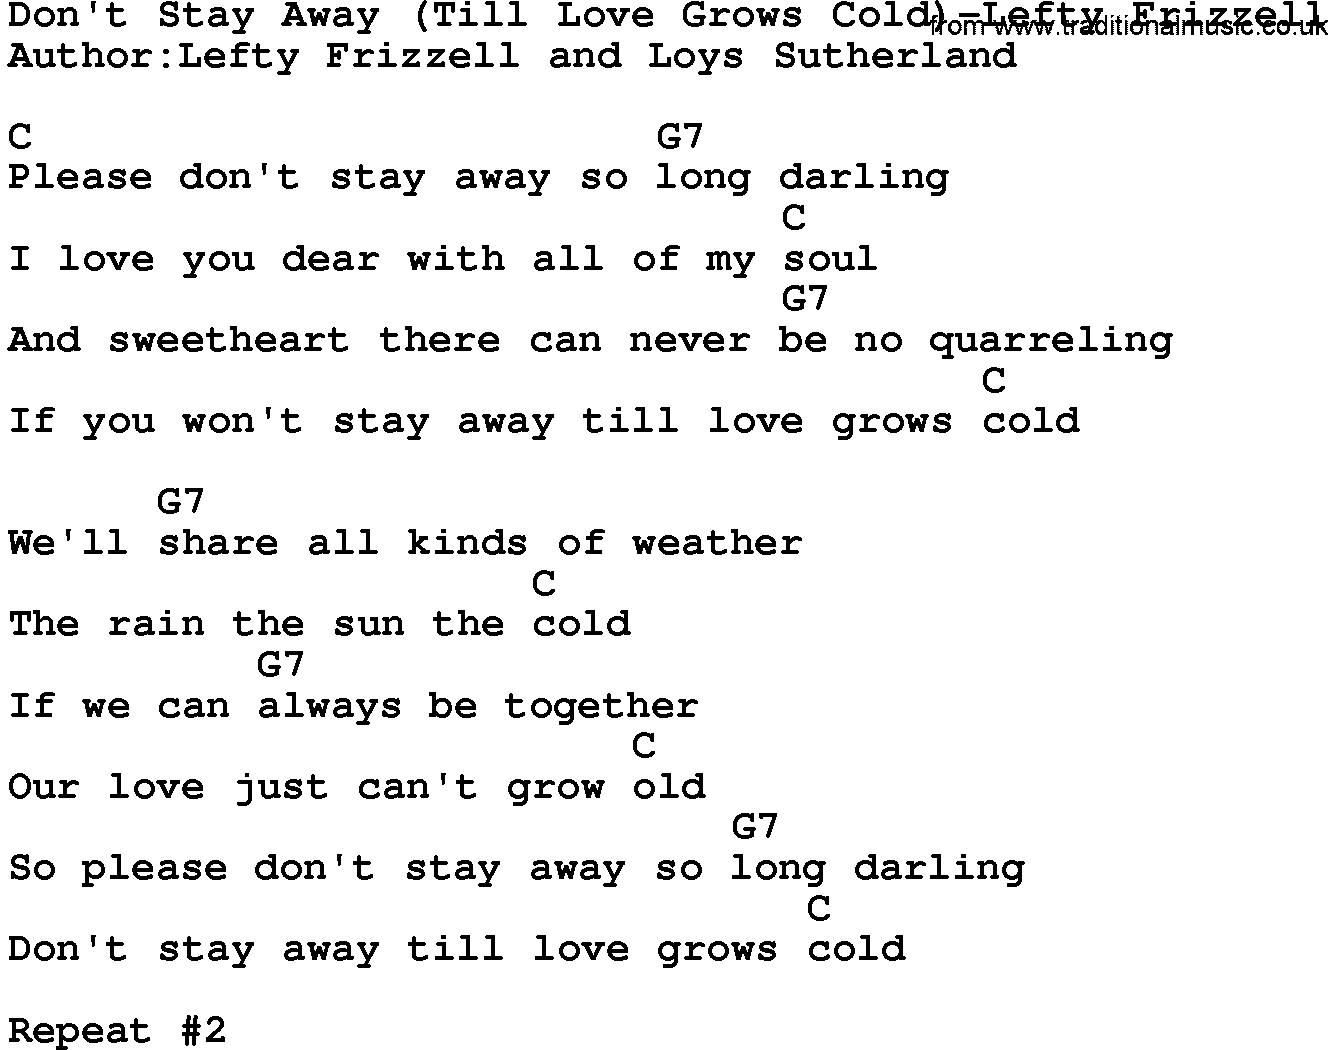 Country musicdont stay awaytill love grows cold lefty frizzell country musicdont stay awaytill love grows cold lefty frizzell lyrics and chords hexwebz Images